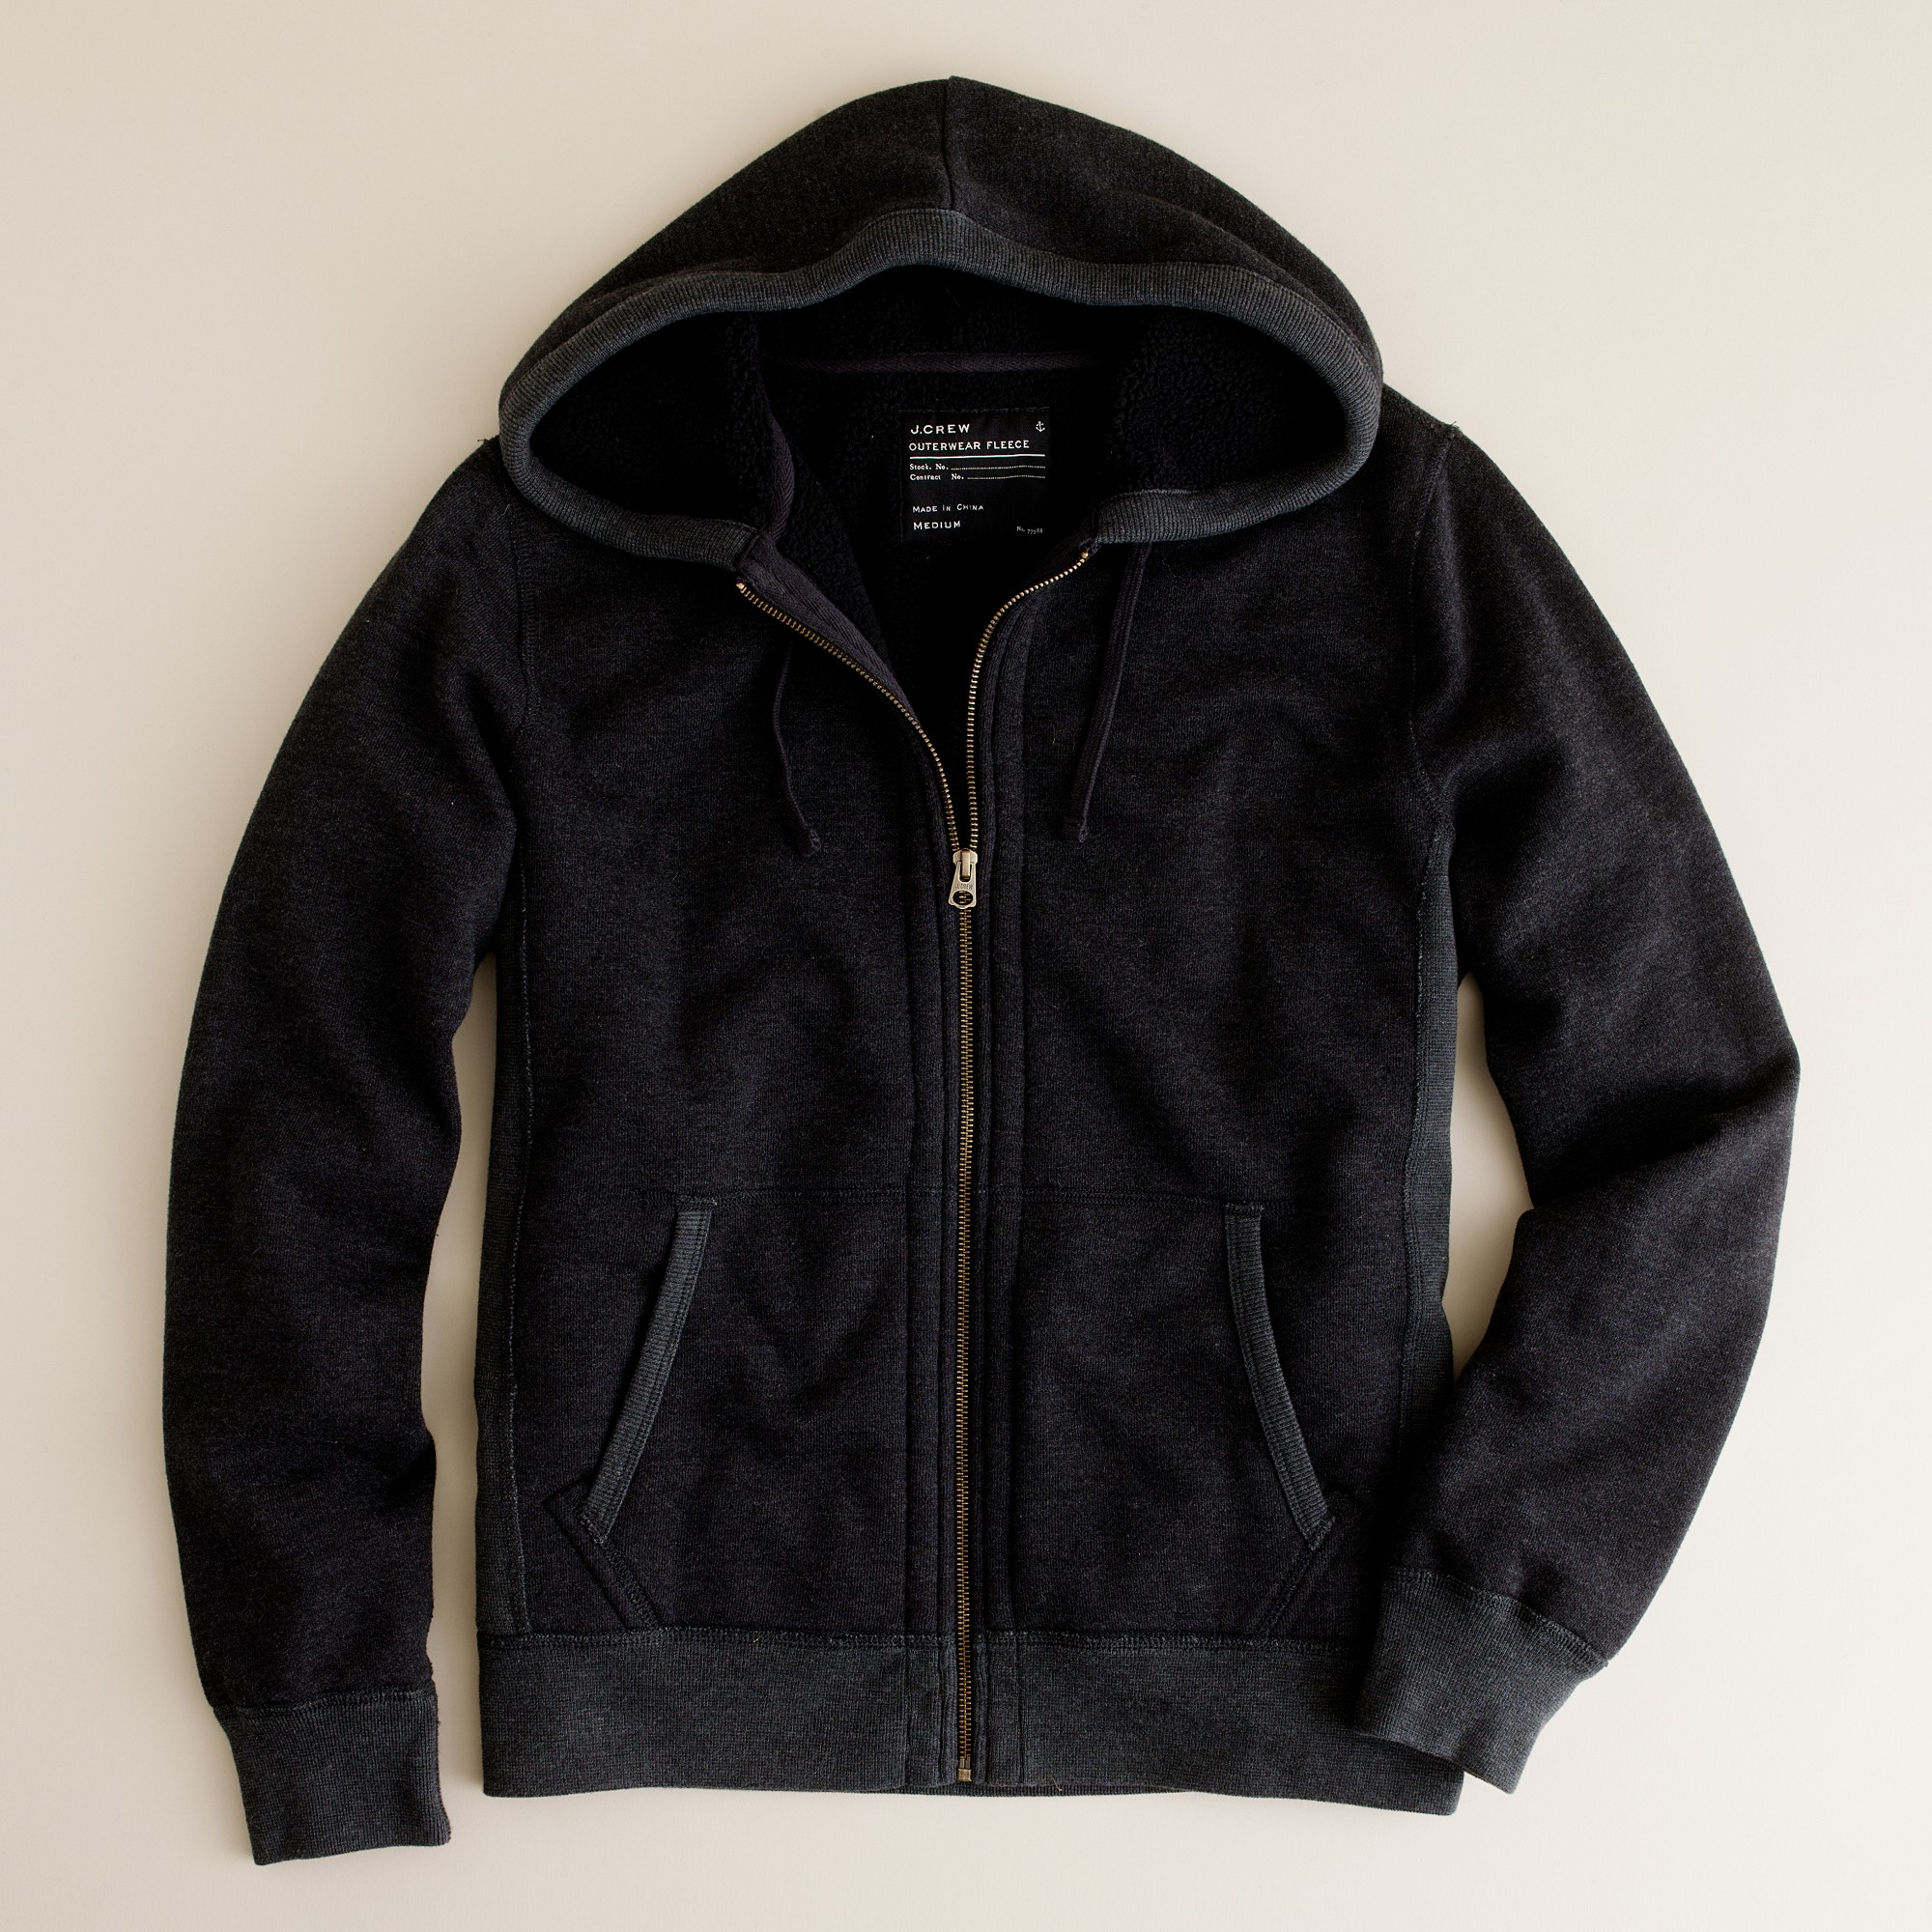 Marled Heavyweight Sherpa Lined Fleece Hoodies for Men Full Zip Plus Size Big and Tall Sweatshirts Jackets. from $ 31 out of 5 stars Gary Com. Fashion Stripe Sherpa Fleece Lined Hoodies for Men Zip Up Big and Tall Zipper Cool Fishing Sweatshirt. from $ 28 99 Prime. 4 out of 5 stars